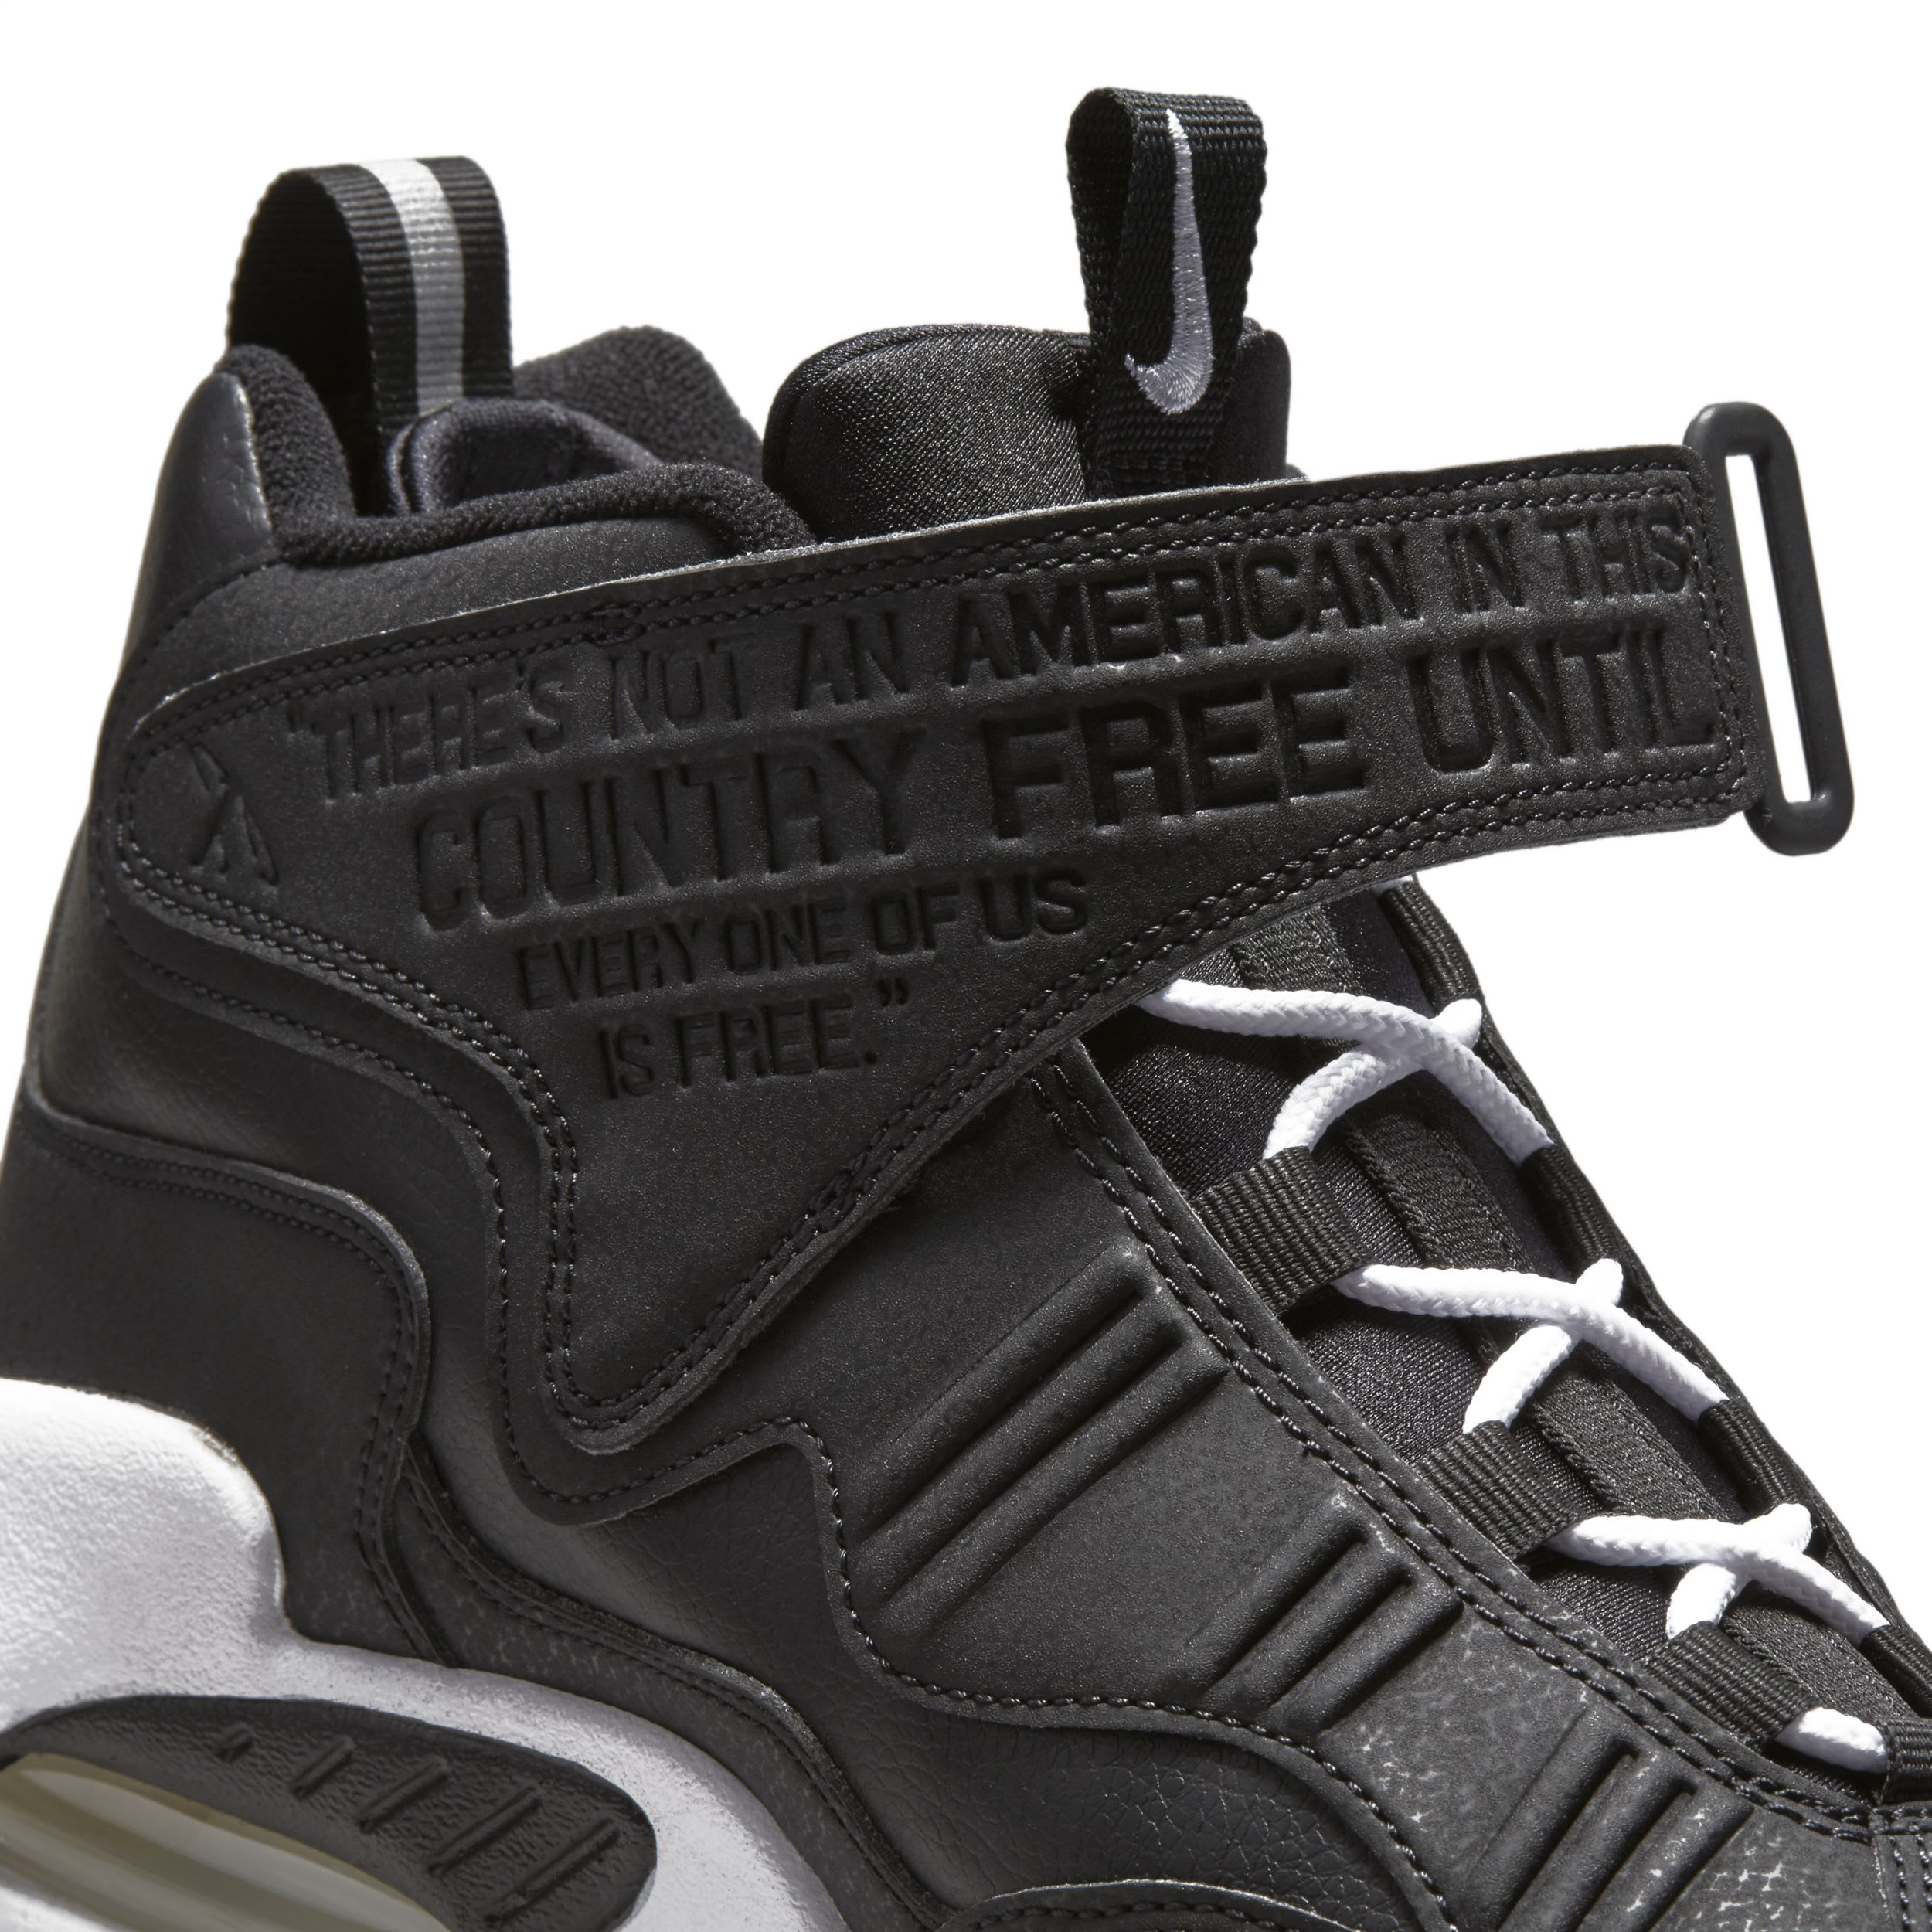 Nike Air Griffey Max 1 'Jackie Robinson' Ankle